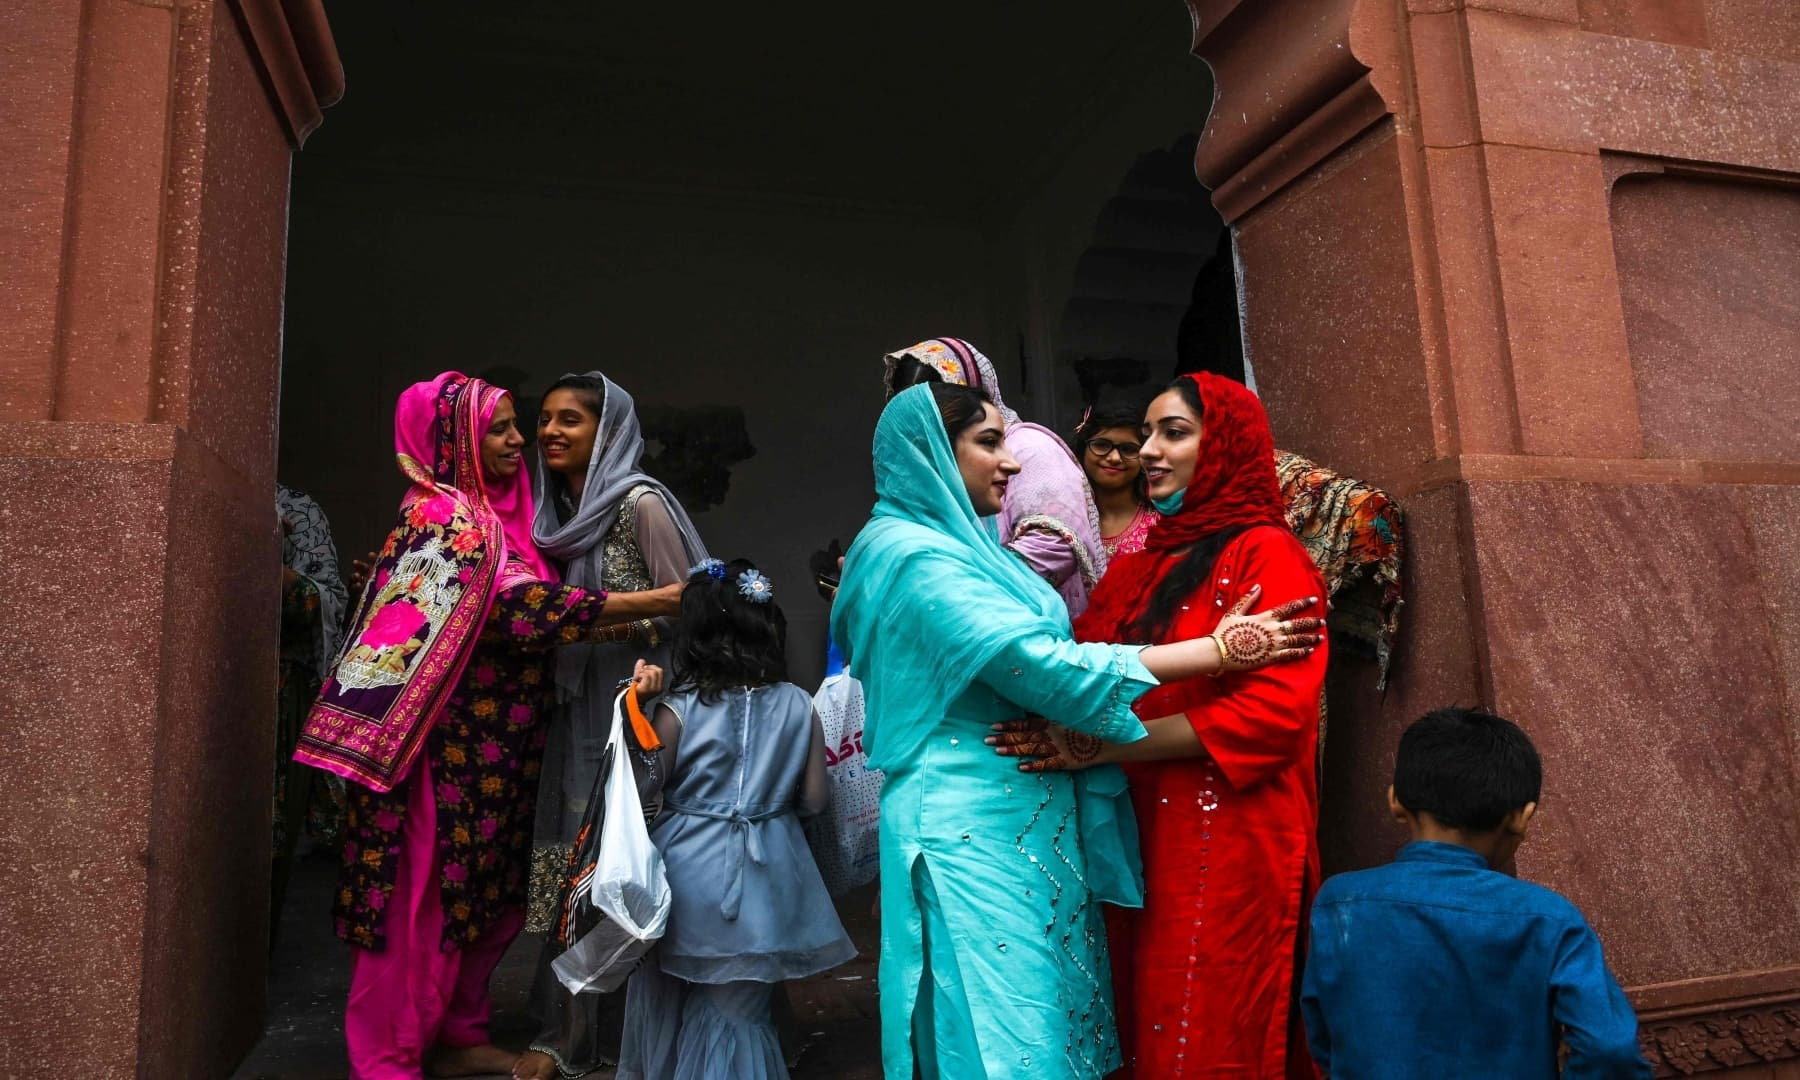 People embrace each other after offering prayers at the Badshahi mosque in Lahore. — AFP